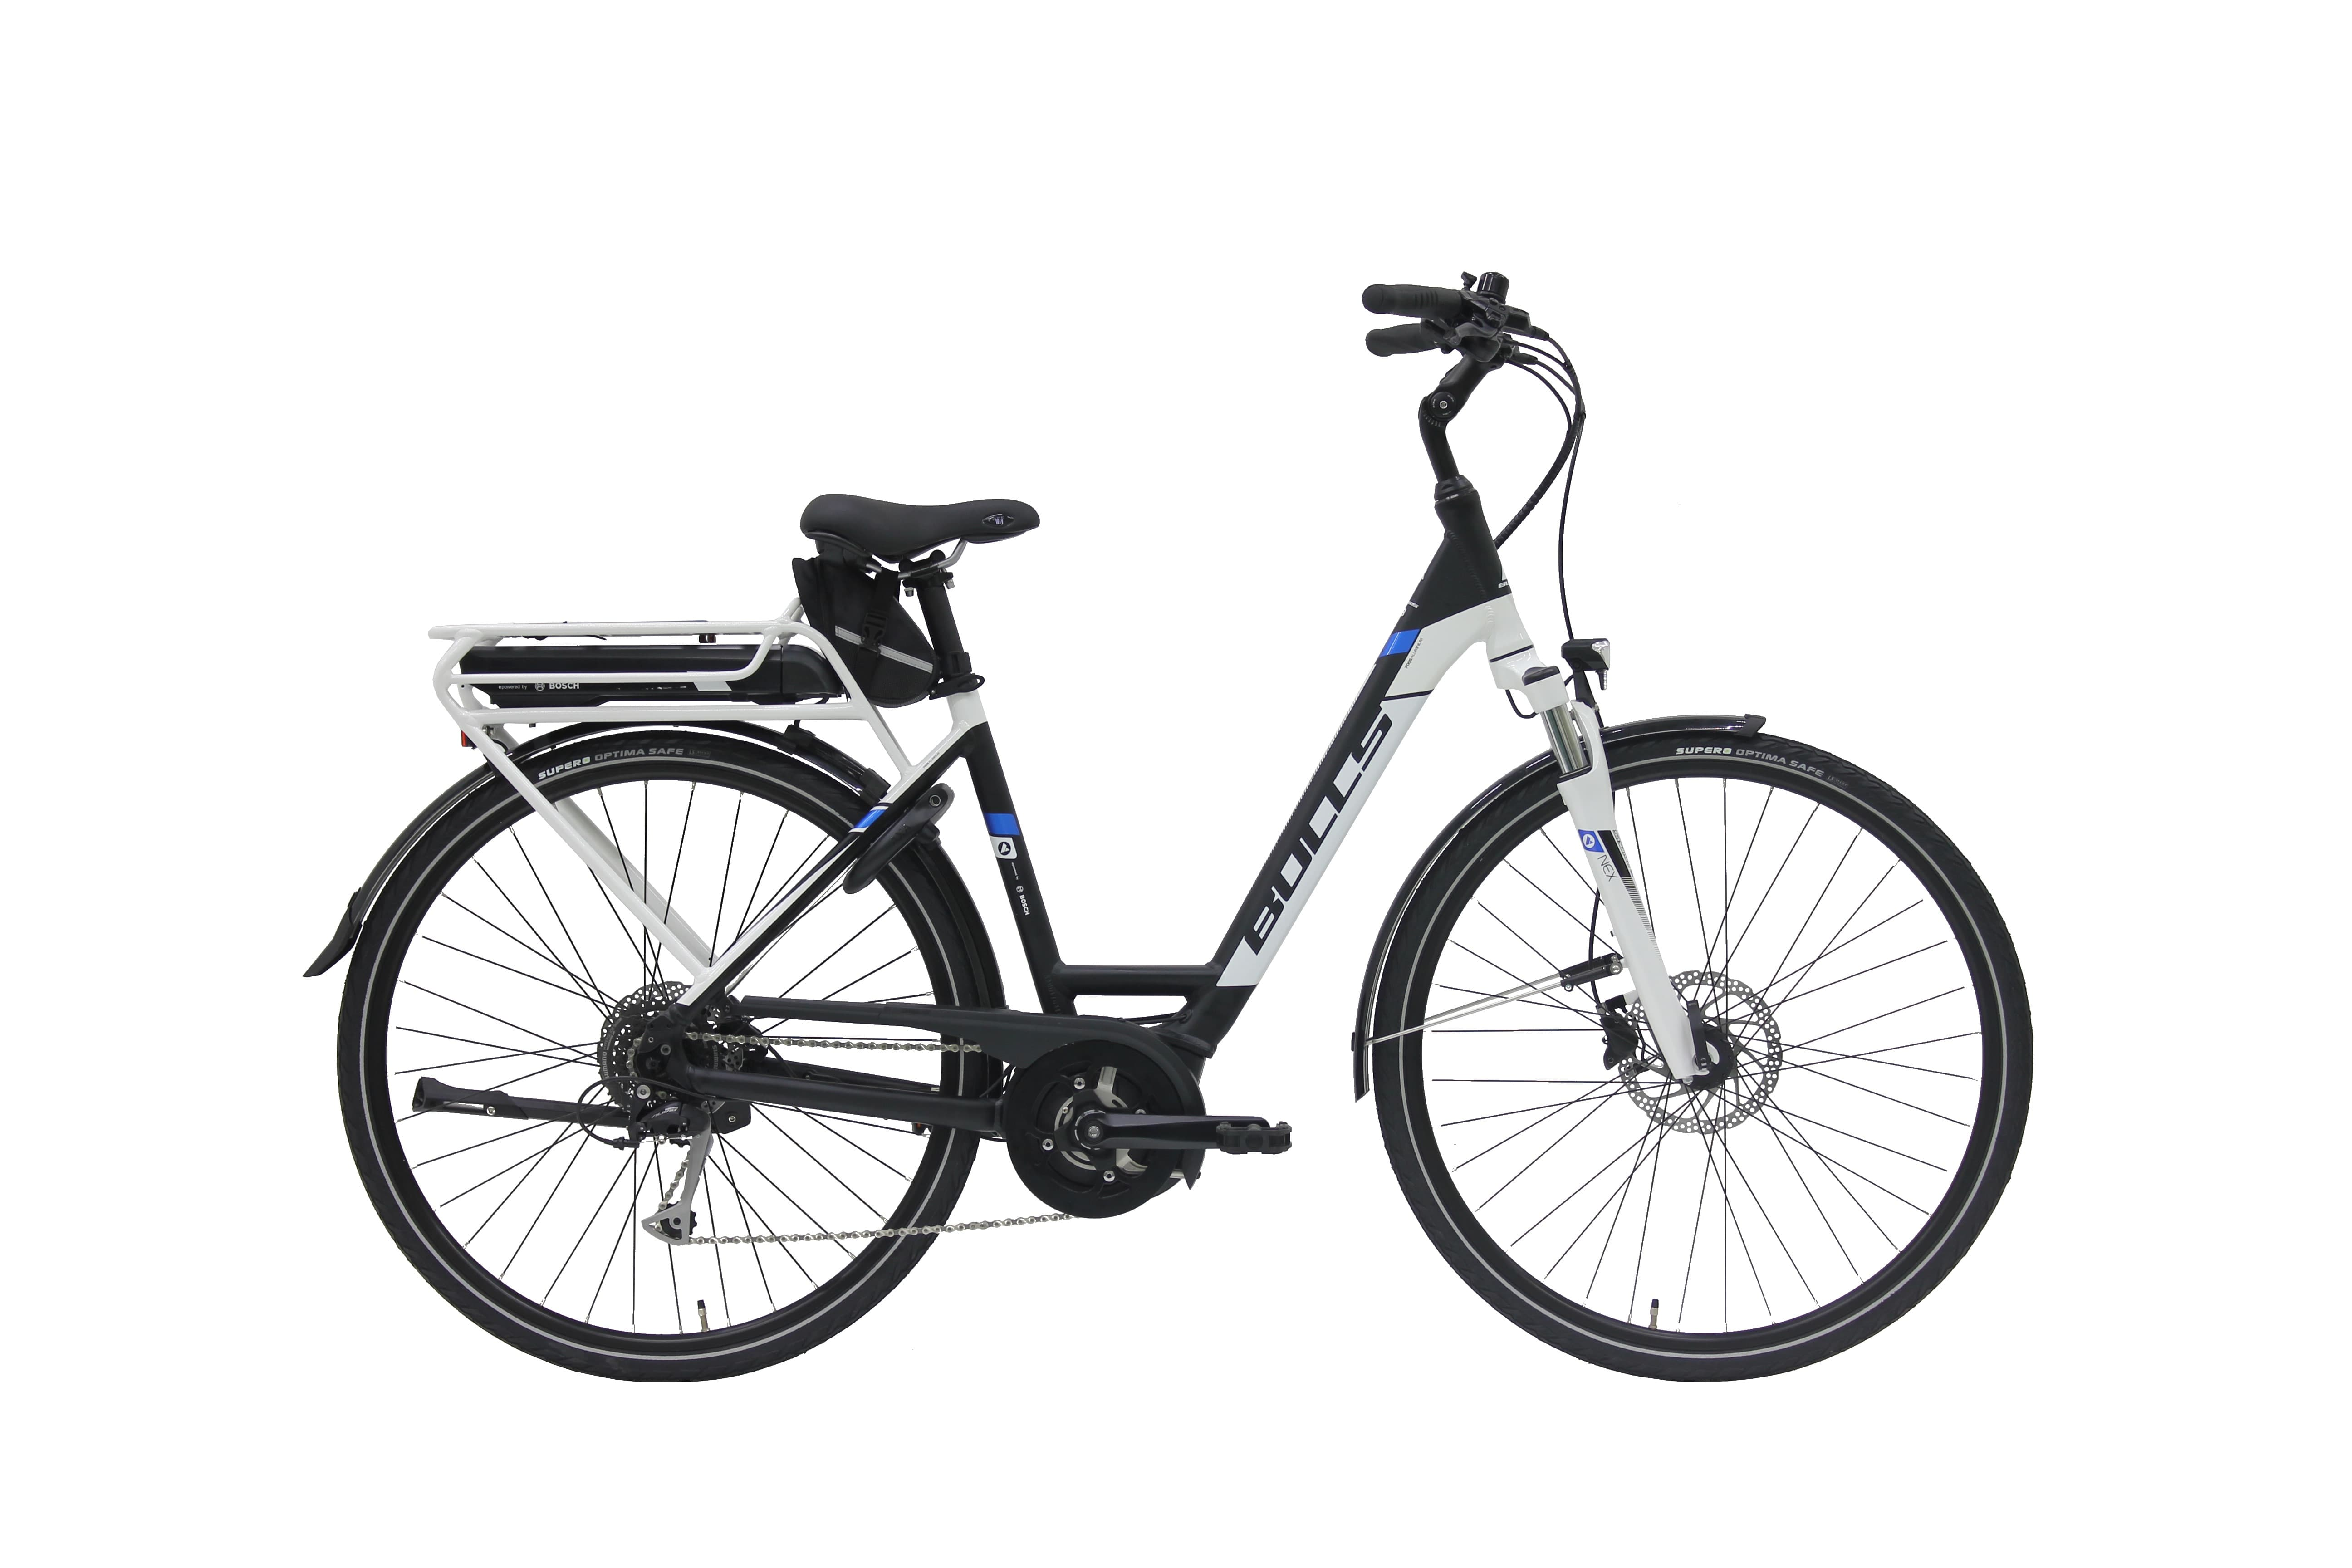 33eda716833 Arizona's #1 Electric bicycle dealer - Bulls E-bikes - Arizona's #1 ...